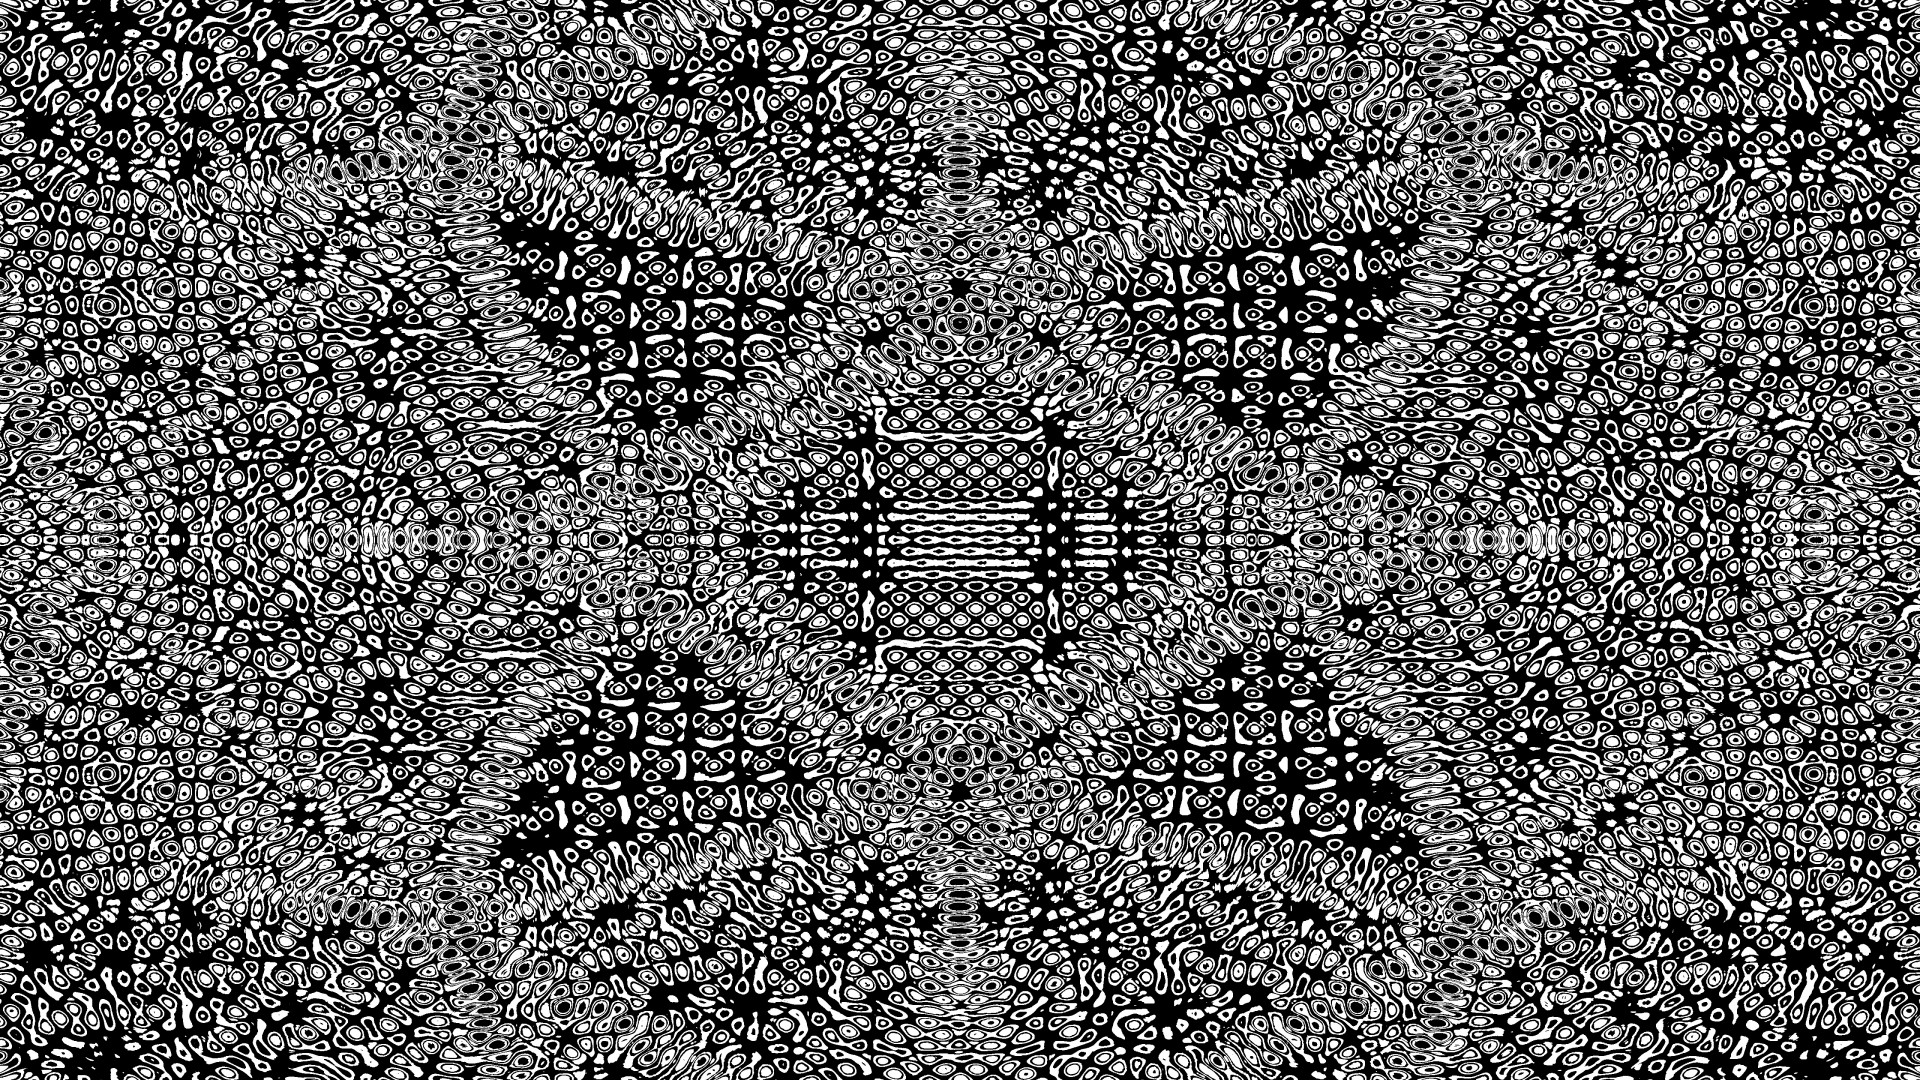 3d Illusion Wallpaper Download Black And White Psychedelic Pattern Free Stock Photo